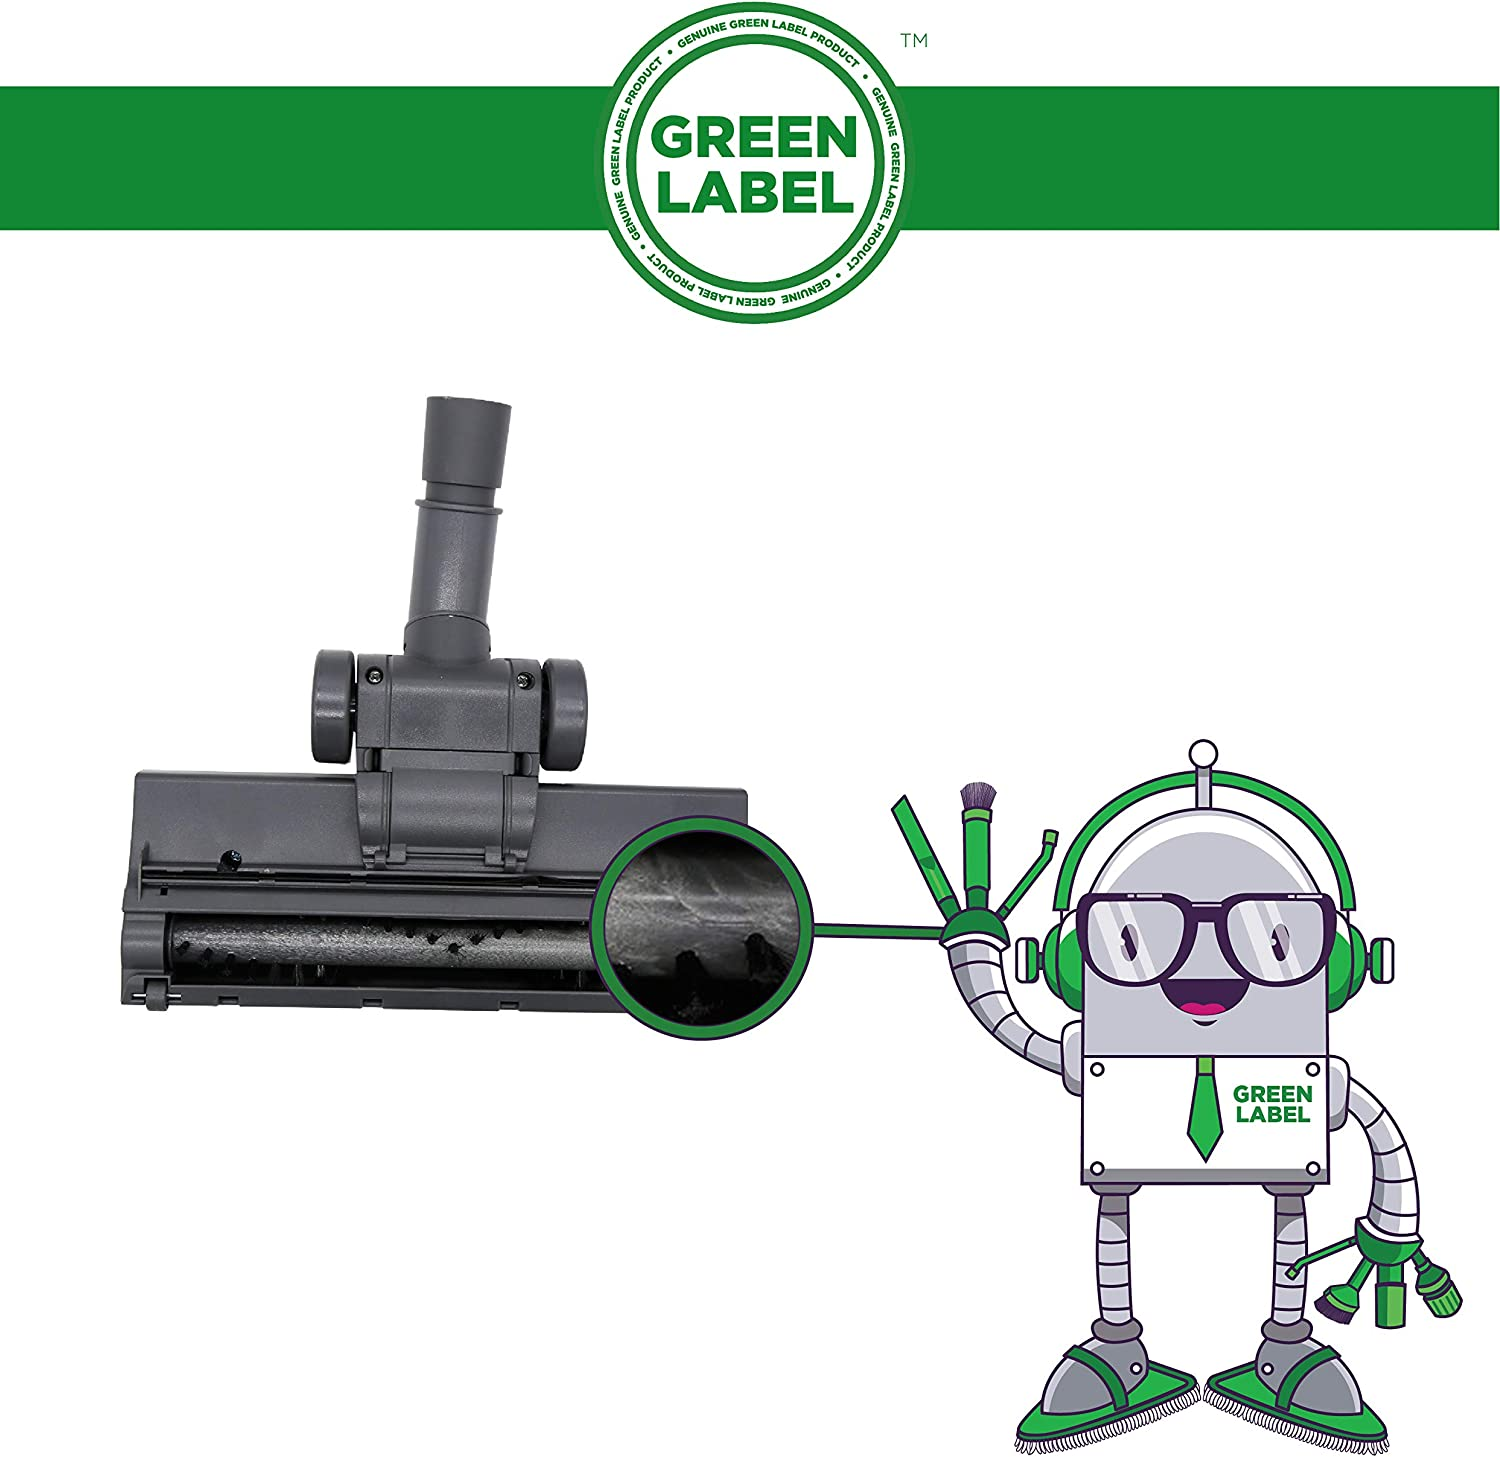 Green Label Universal Turbo Head Floor Brush Tool 32-35 mm for Most Vacuum Cleaners: Hoover, Dirt Devil, Bissell, Miele, Samsung, Electrolux, Kenmore, Panasonic, and more